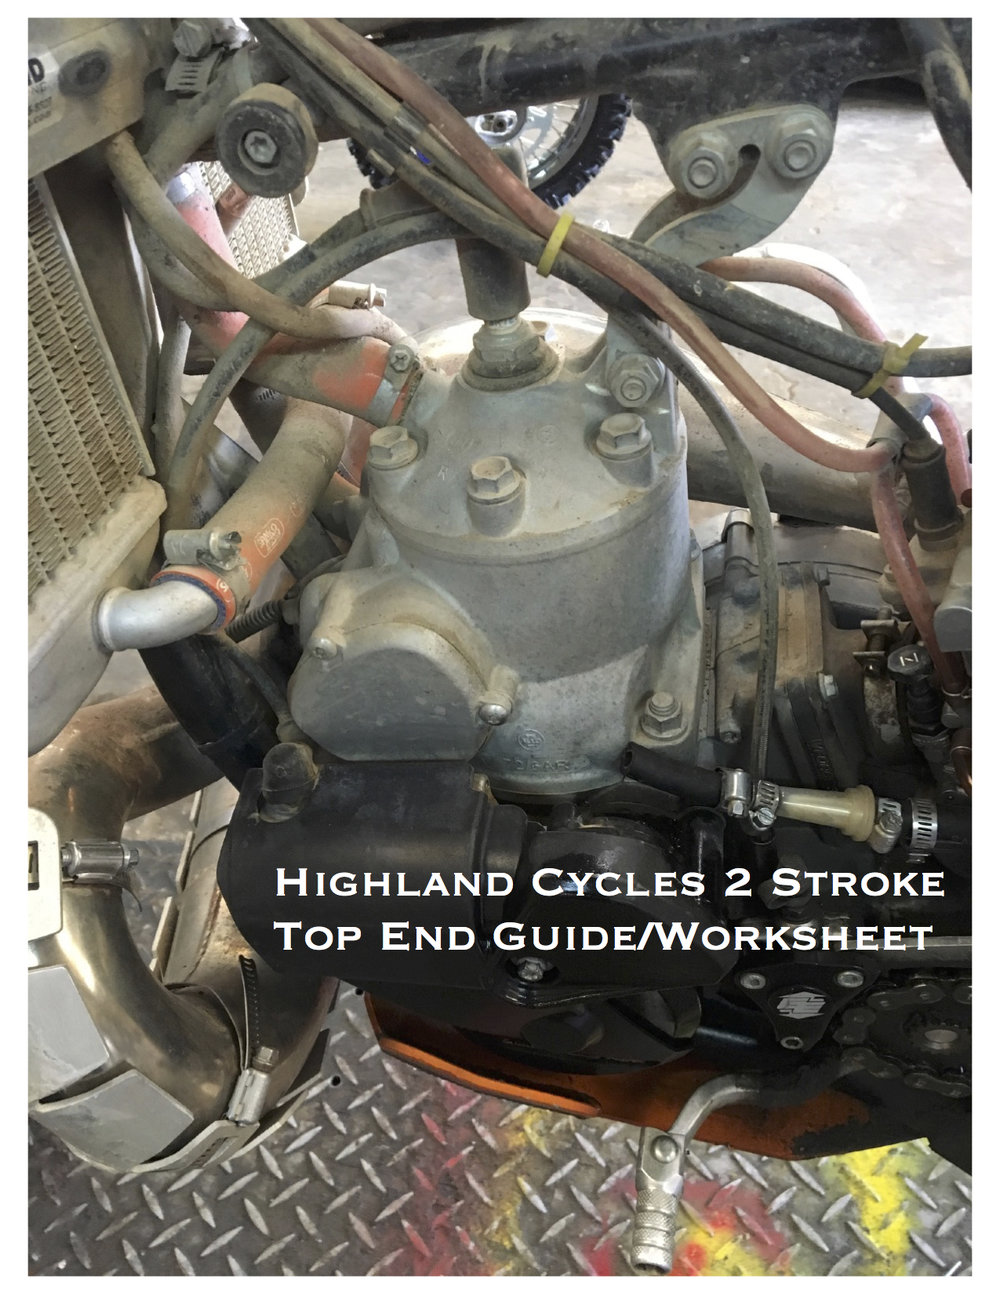 2stroke top end guide cover.jpg